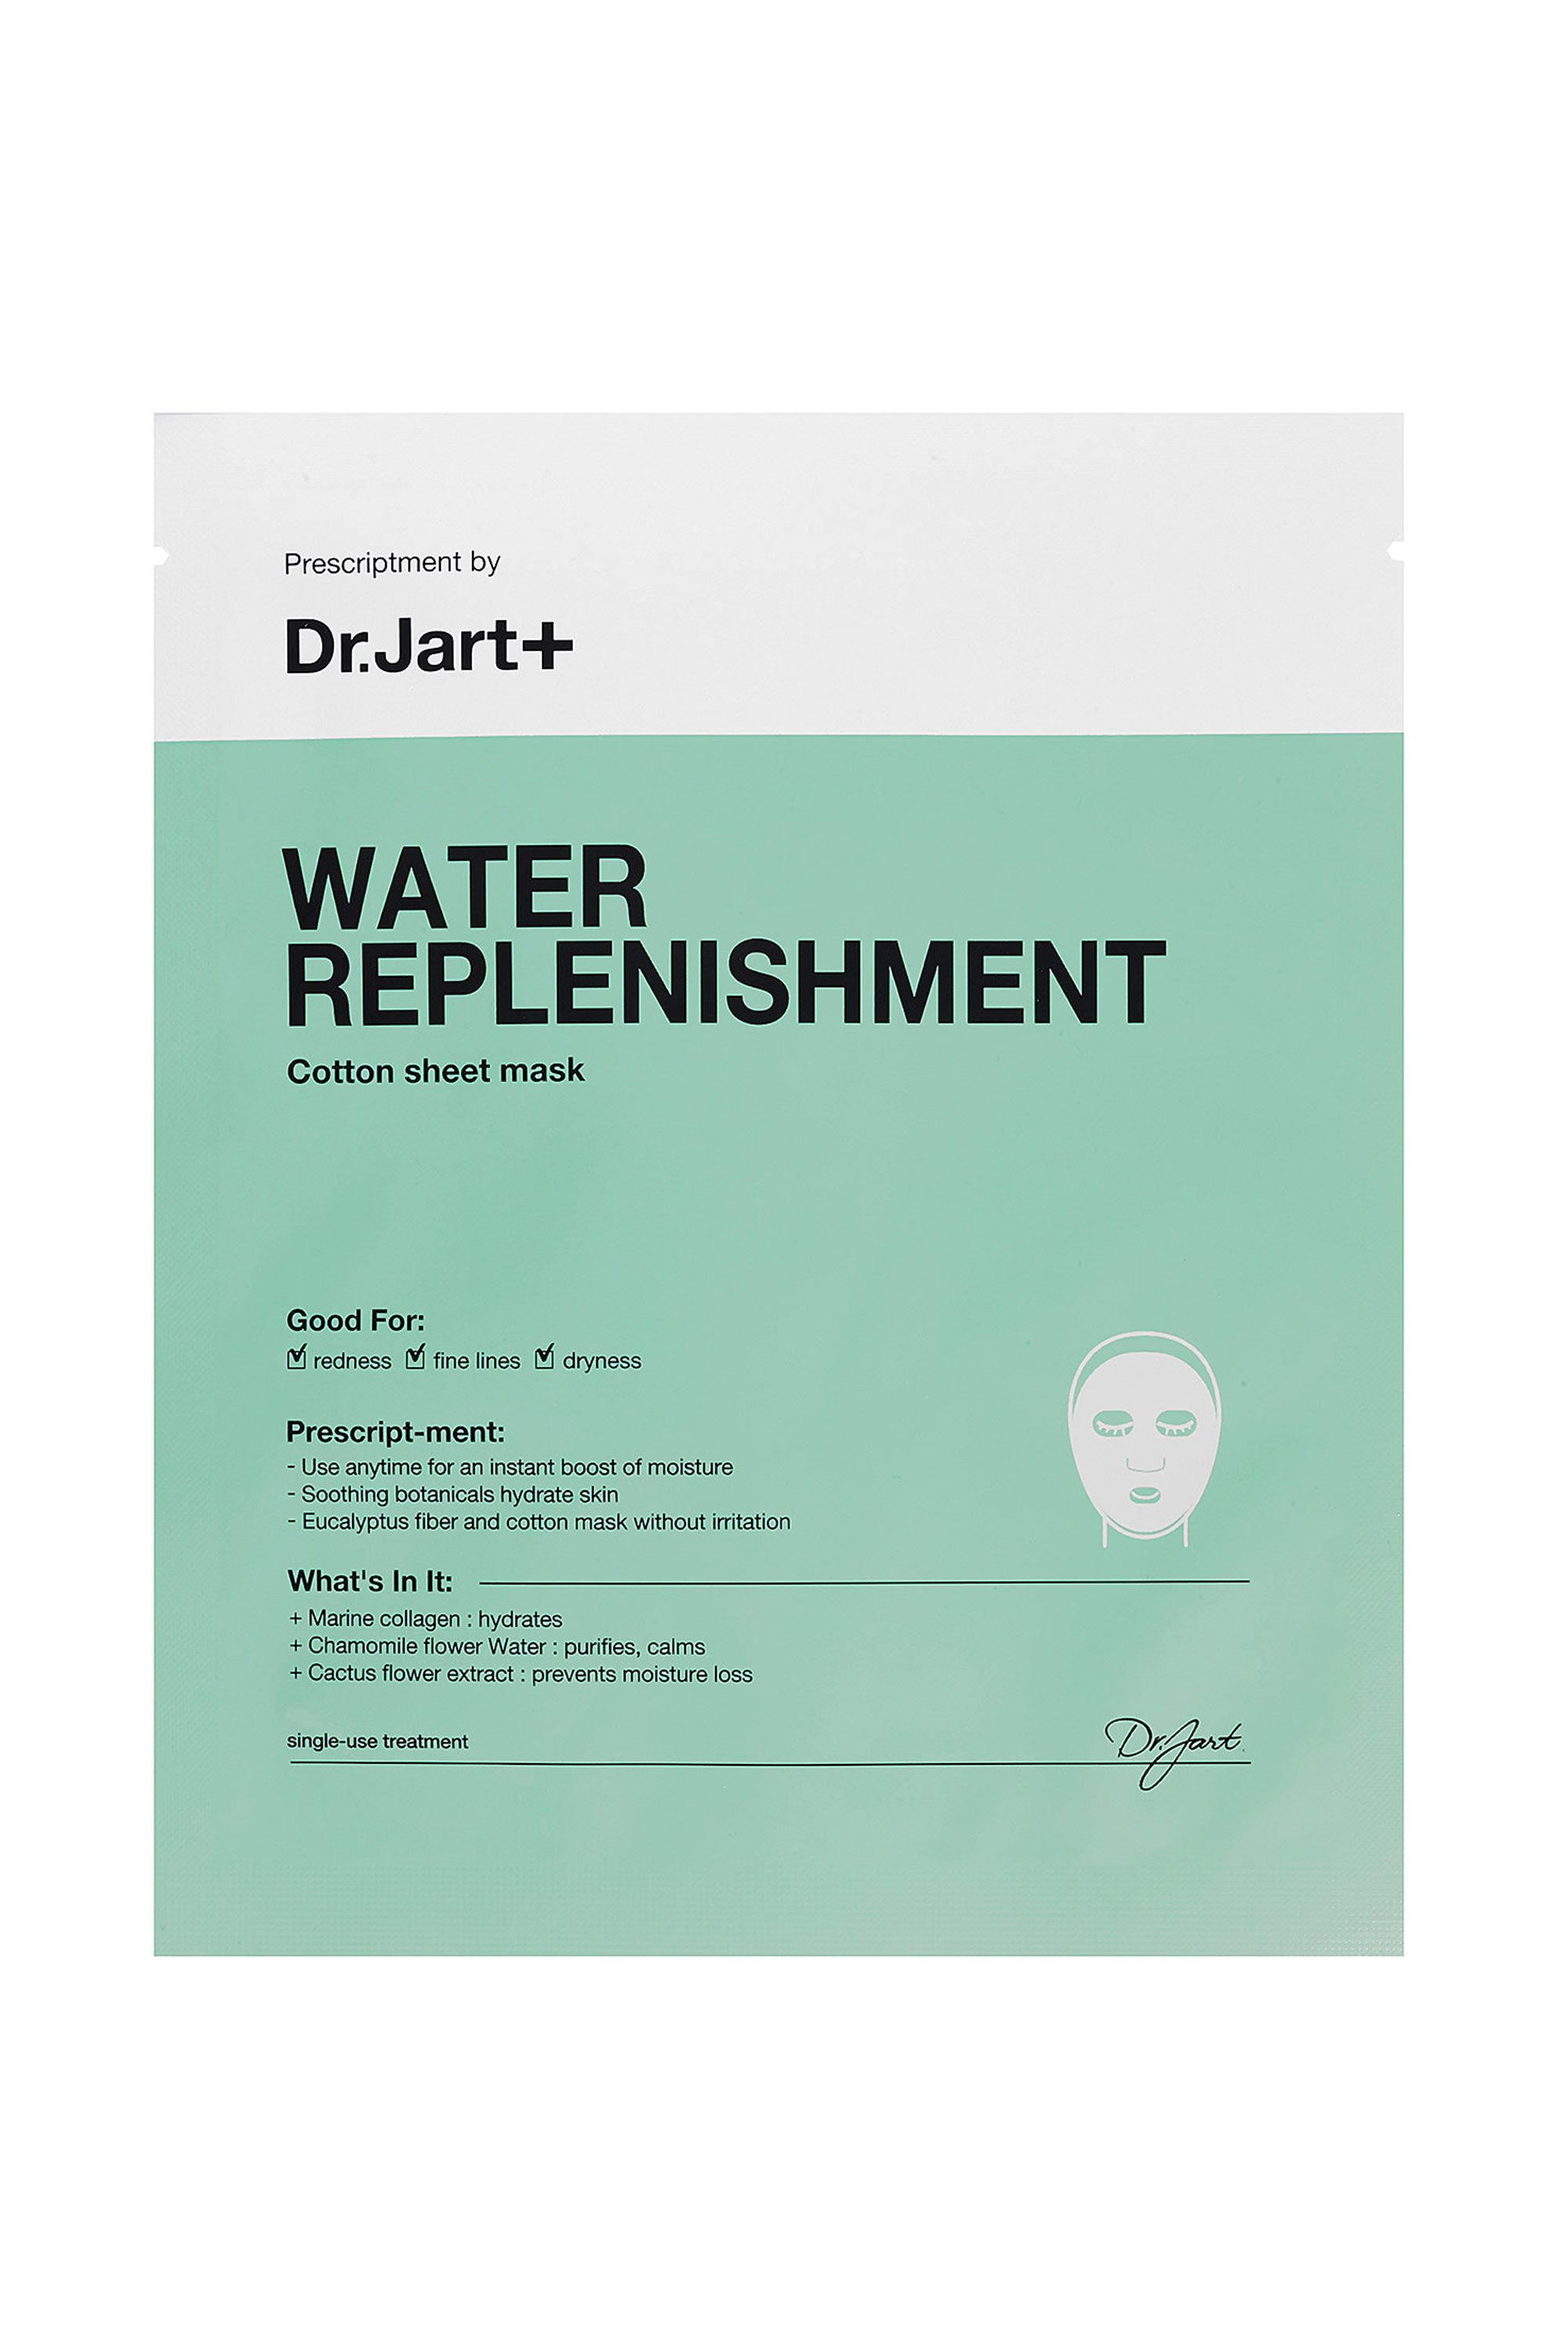 Dr. Jart+ Water Replenishment Cotton Sheet Mask Dr. Jart+ Water Replenishment Cotton Sheet Mask, $8 SHOP IT Ultra-moisturizing ingredients like allantoin and witch hazel will keep your mug feeling fresher longer, plus the bio-cellulose sheet gives off a cooling sensation. *Ahh*